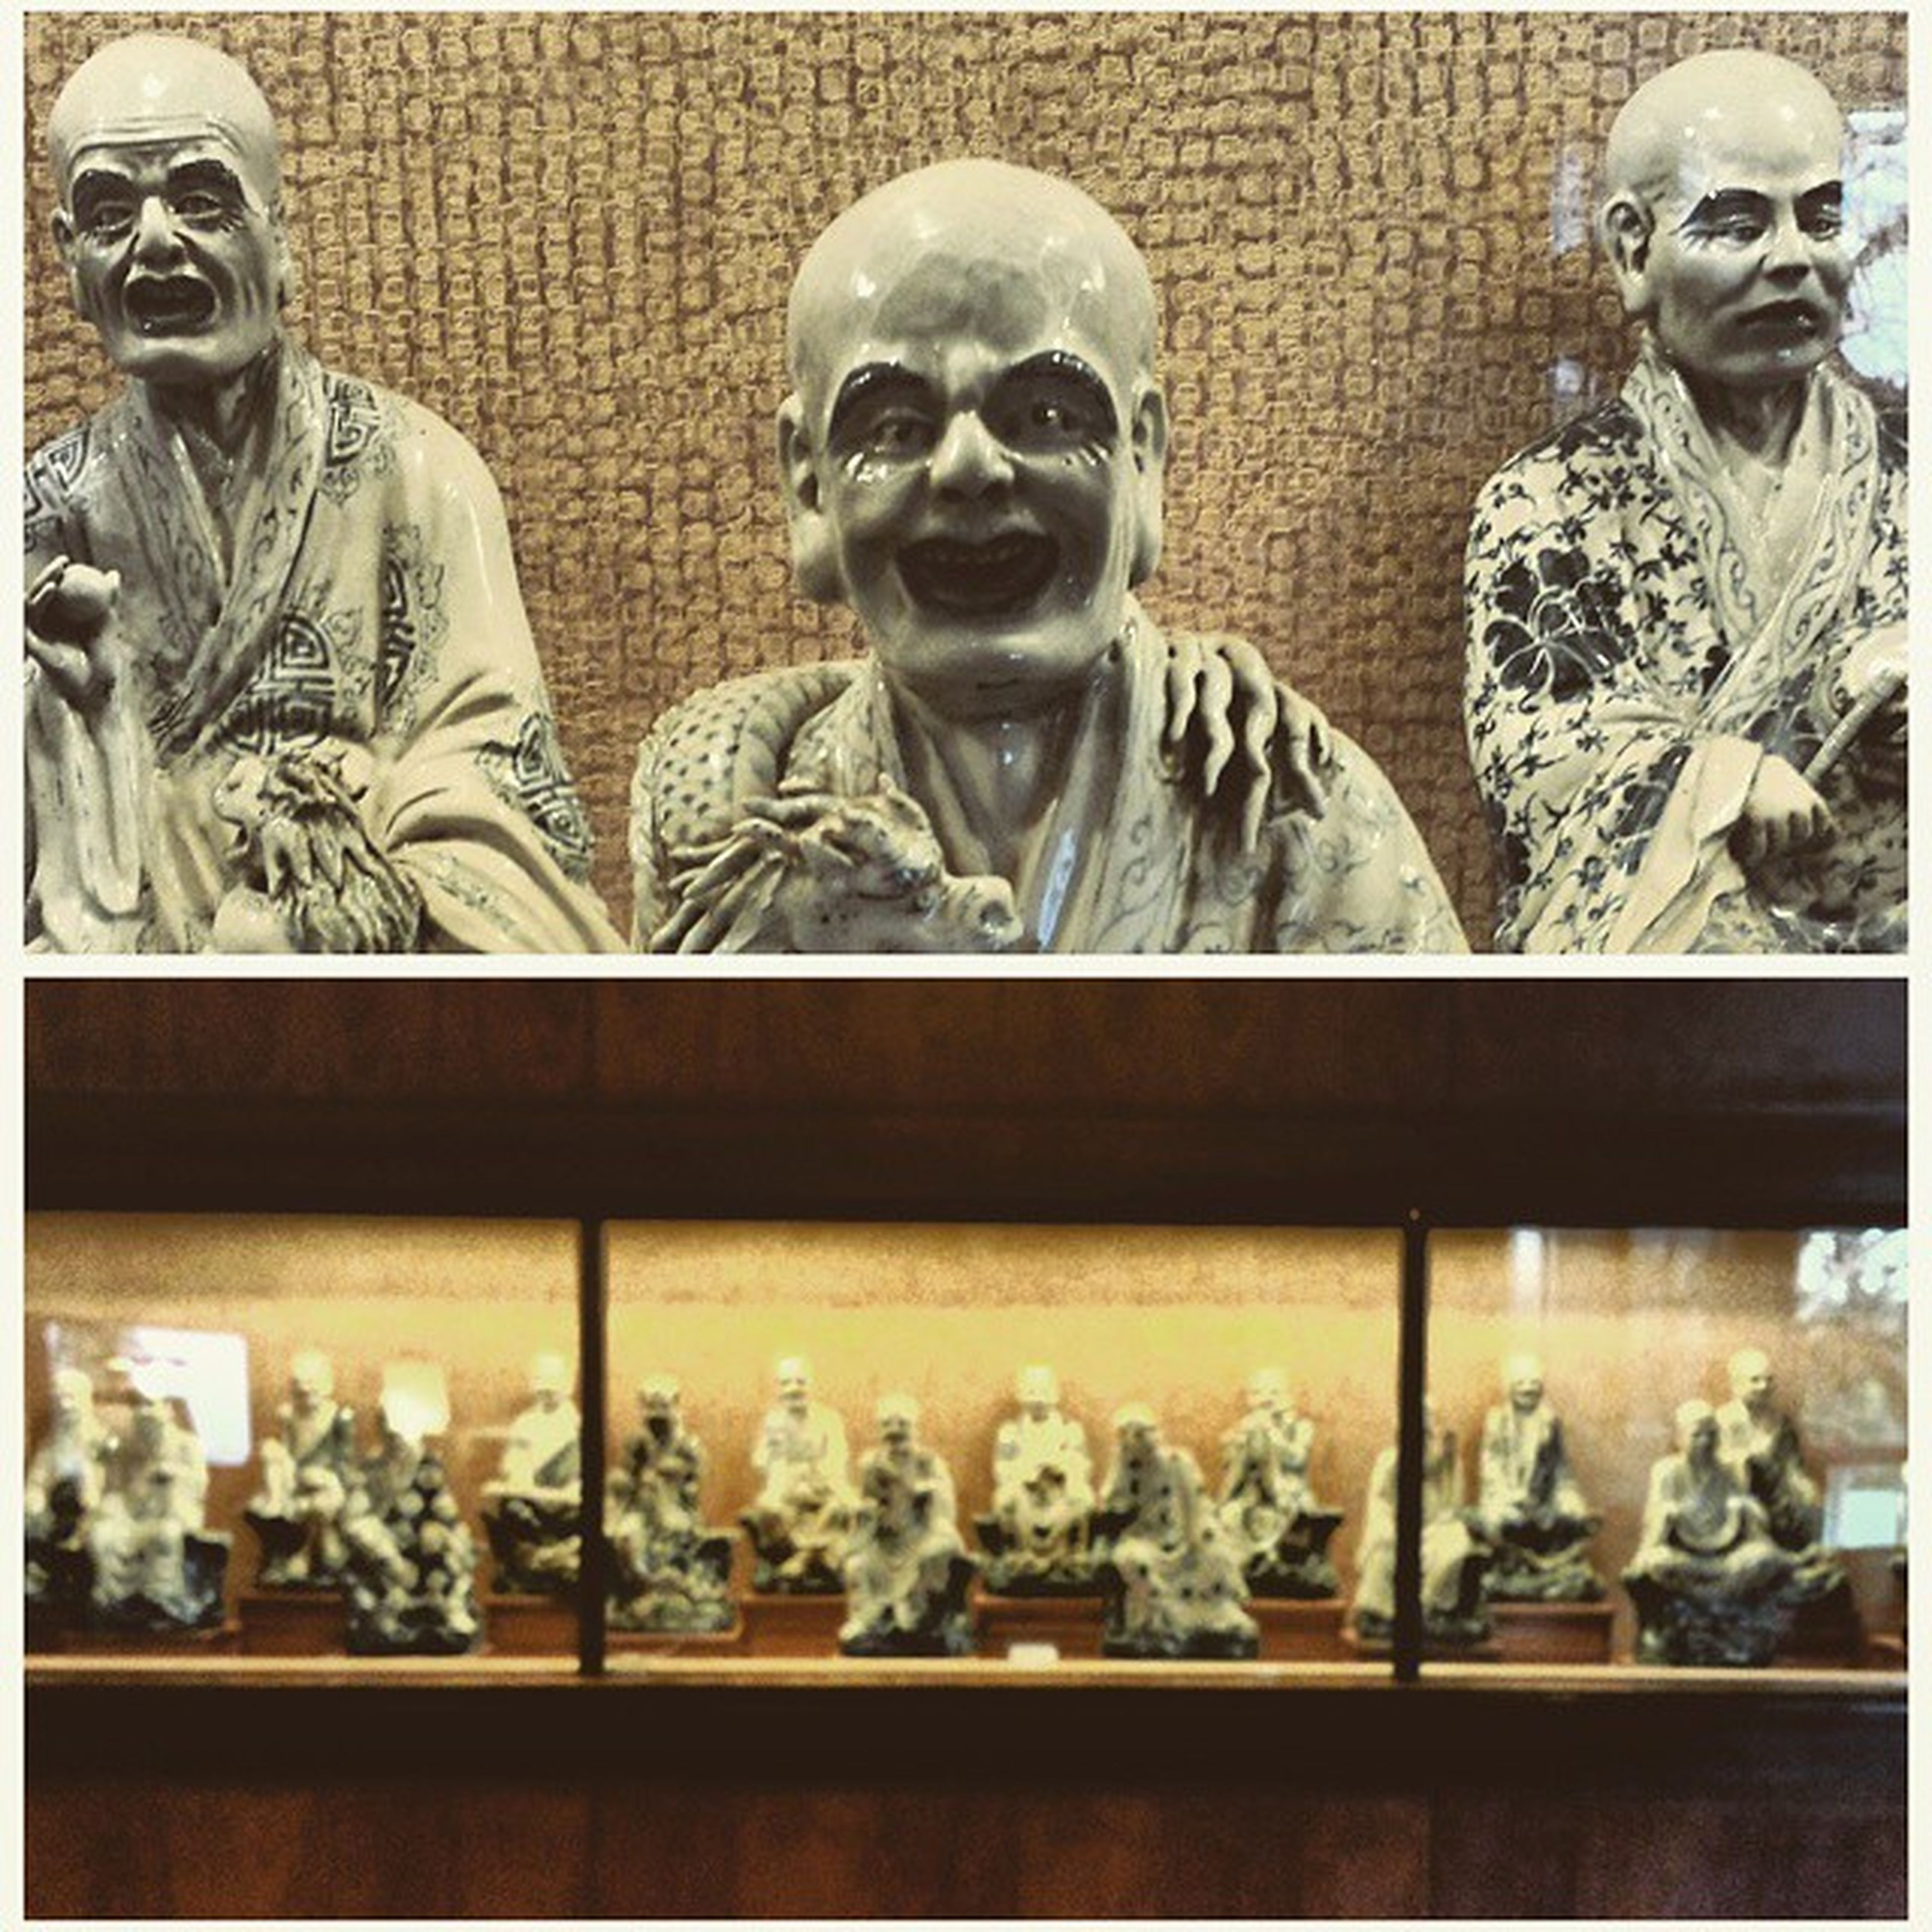 human representation, art and craft, art, statue, sculpture, creativity, indoors, animal representation, carving - craft product, low angle view, figurine, no people, craft, glass - material, ornate, day, buddha, window